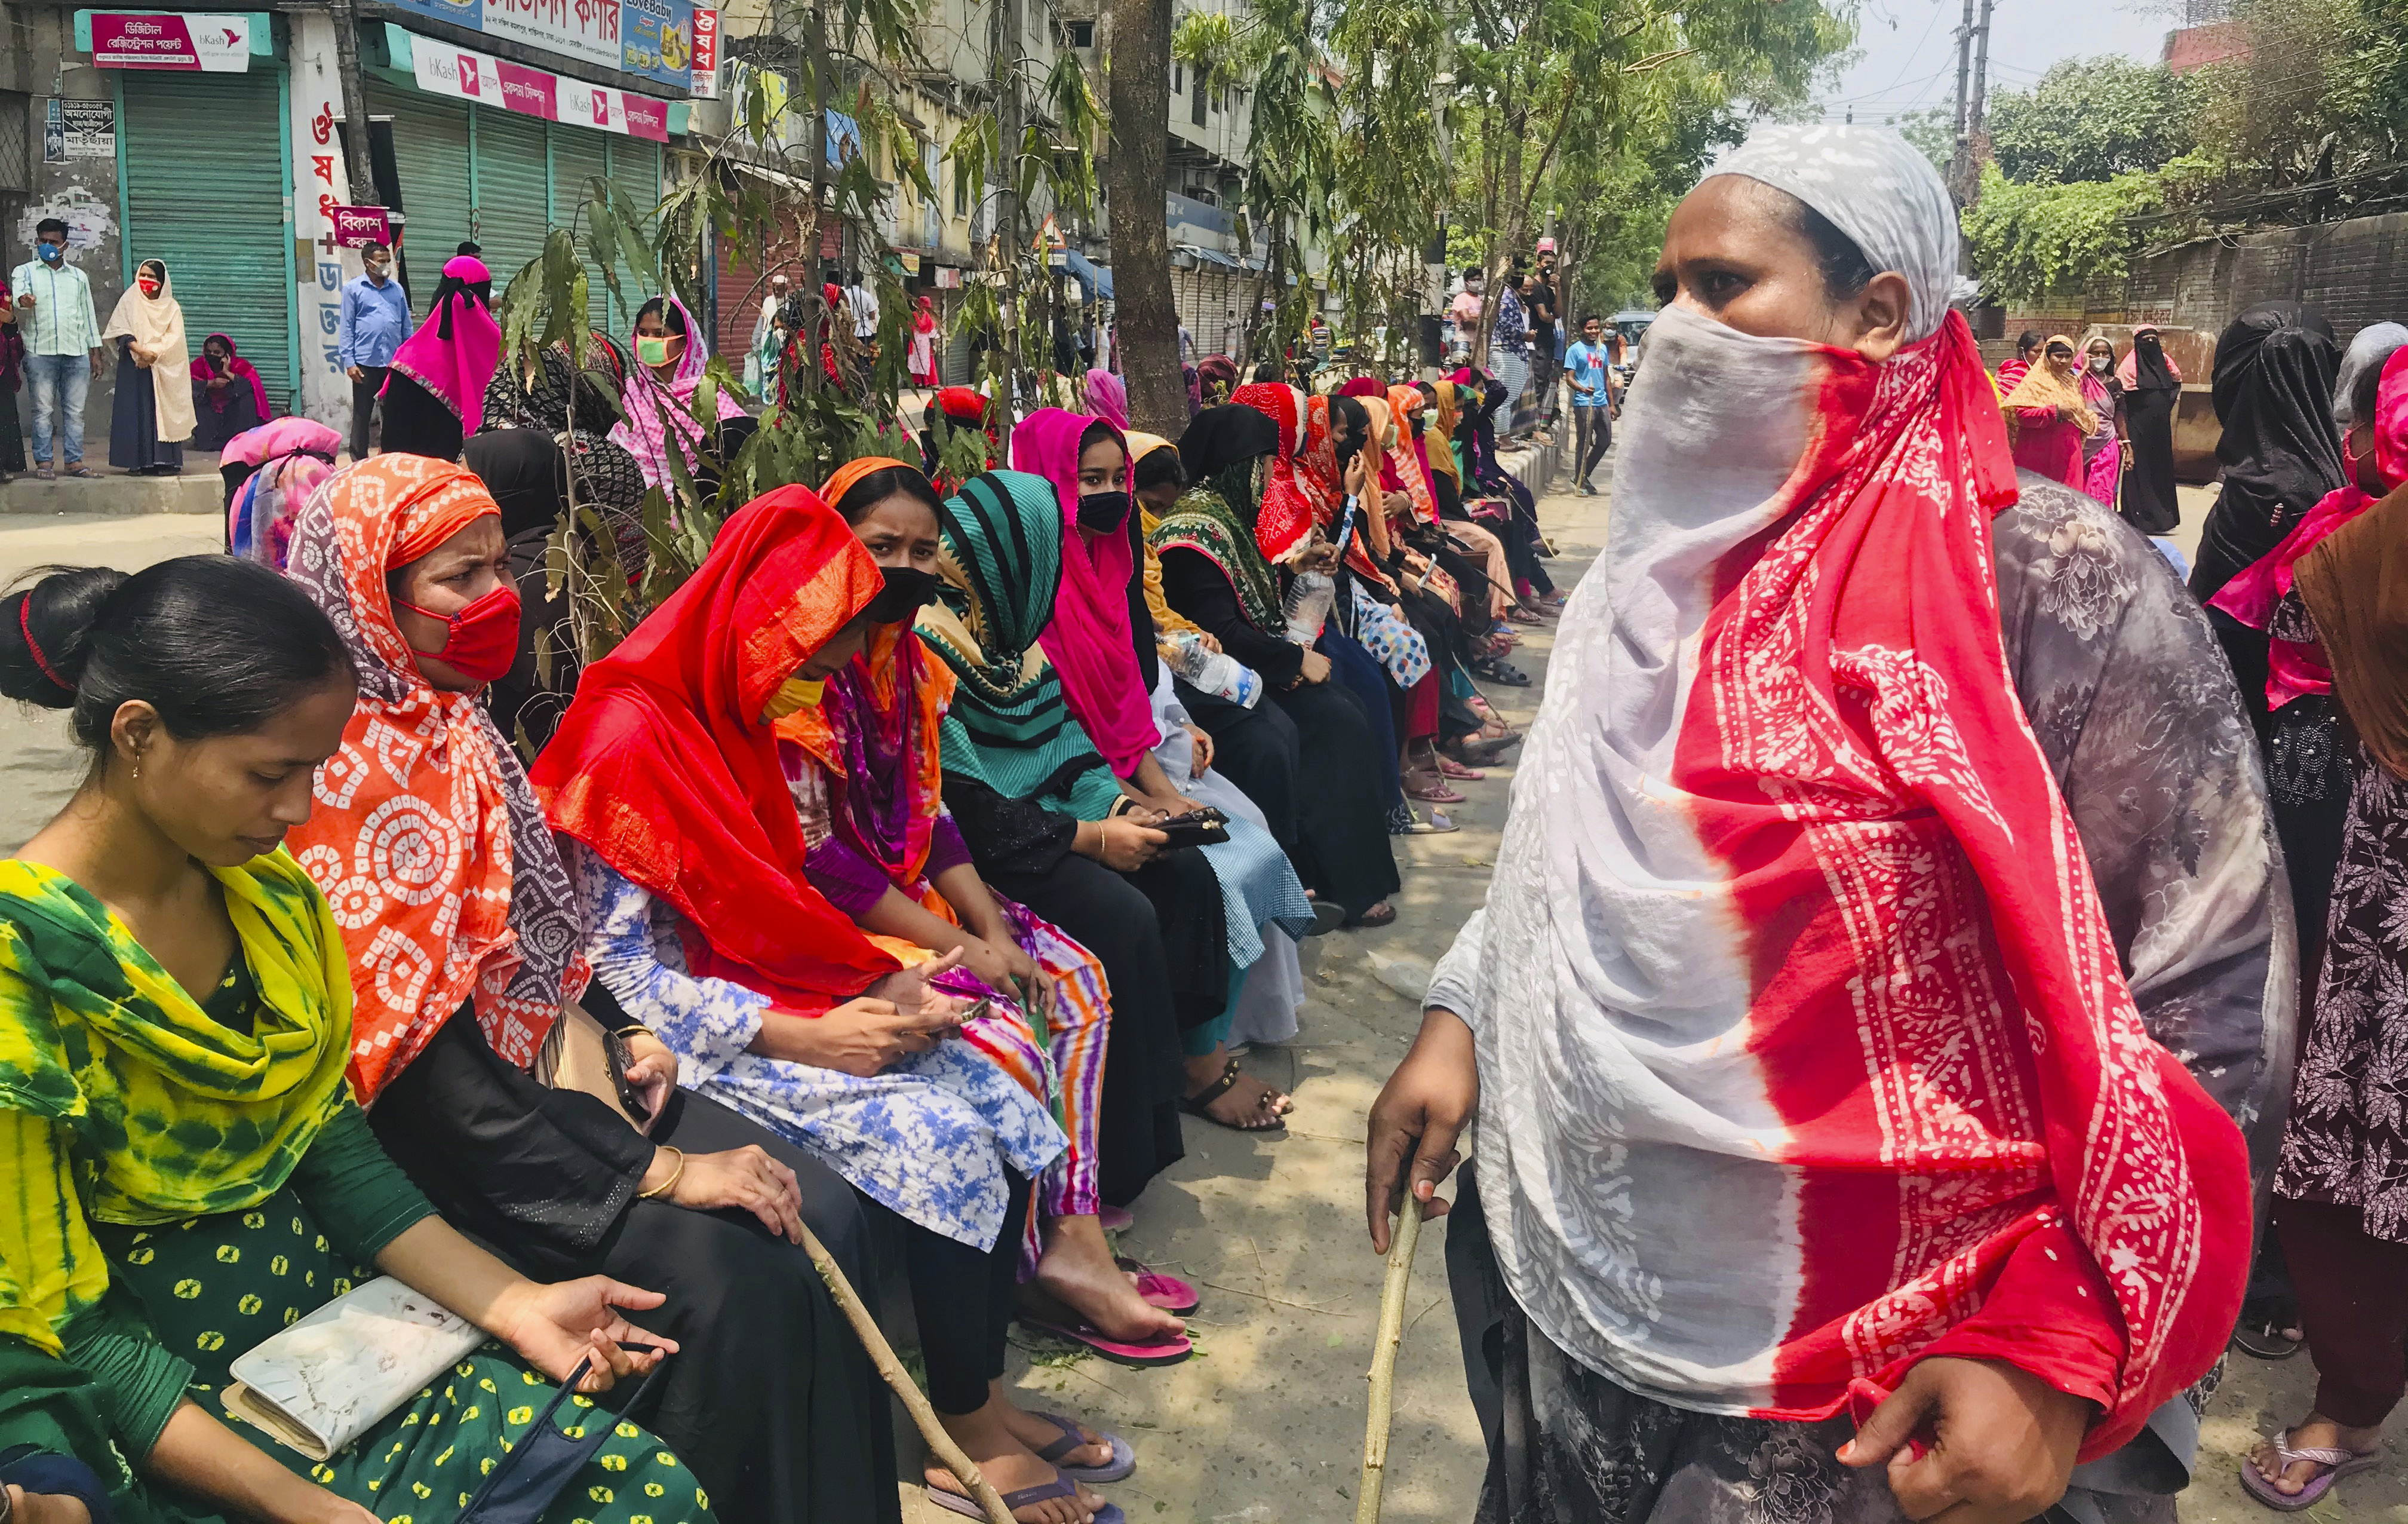 Bangladeshi garment workers block a road demanding their unpaid wages during a protest in Dhaka, Bangladesh